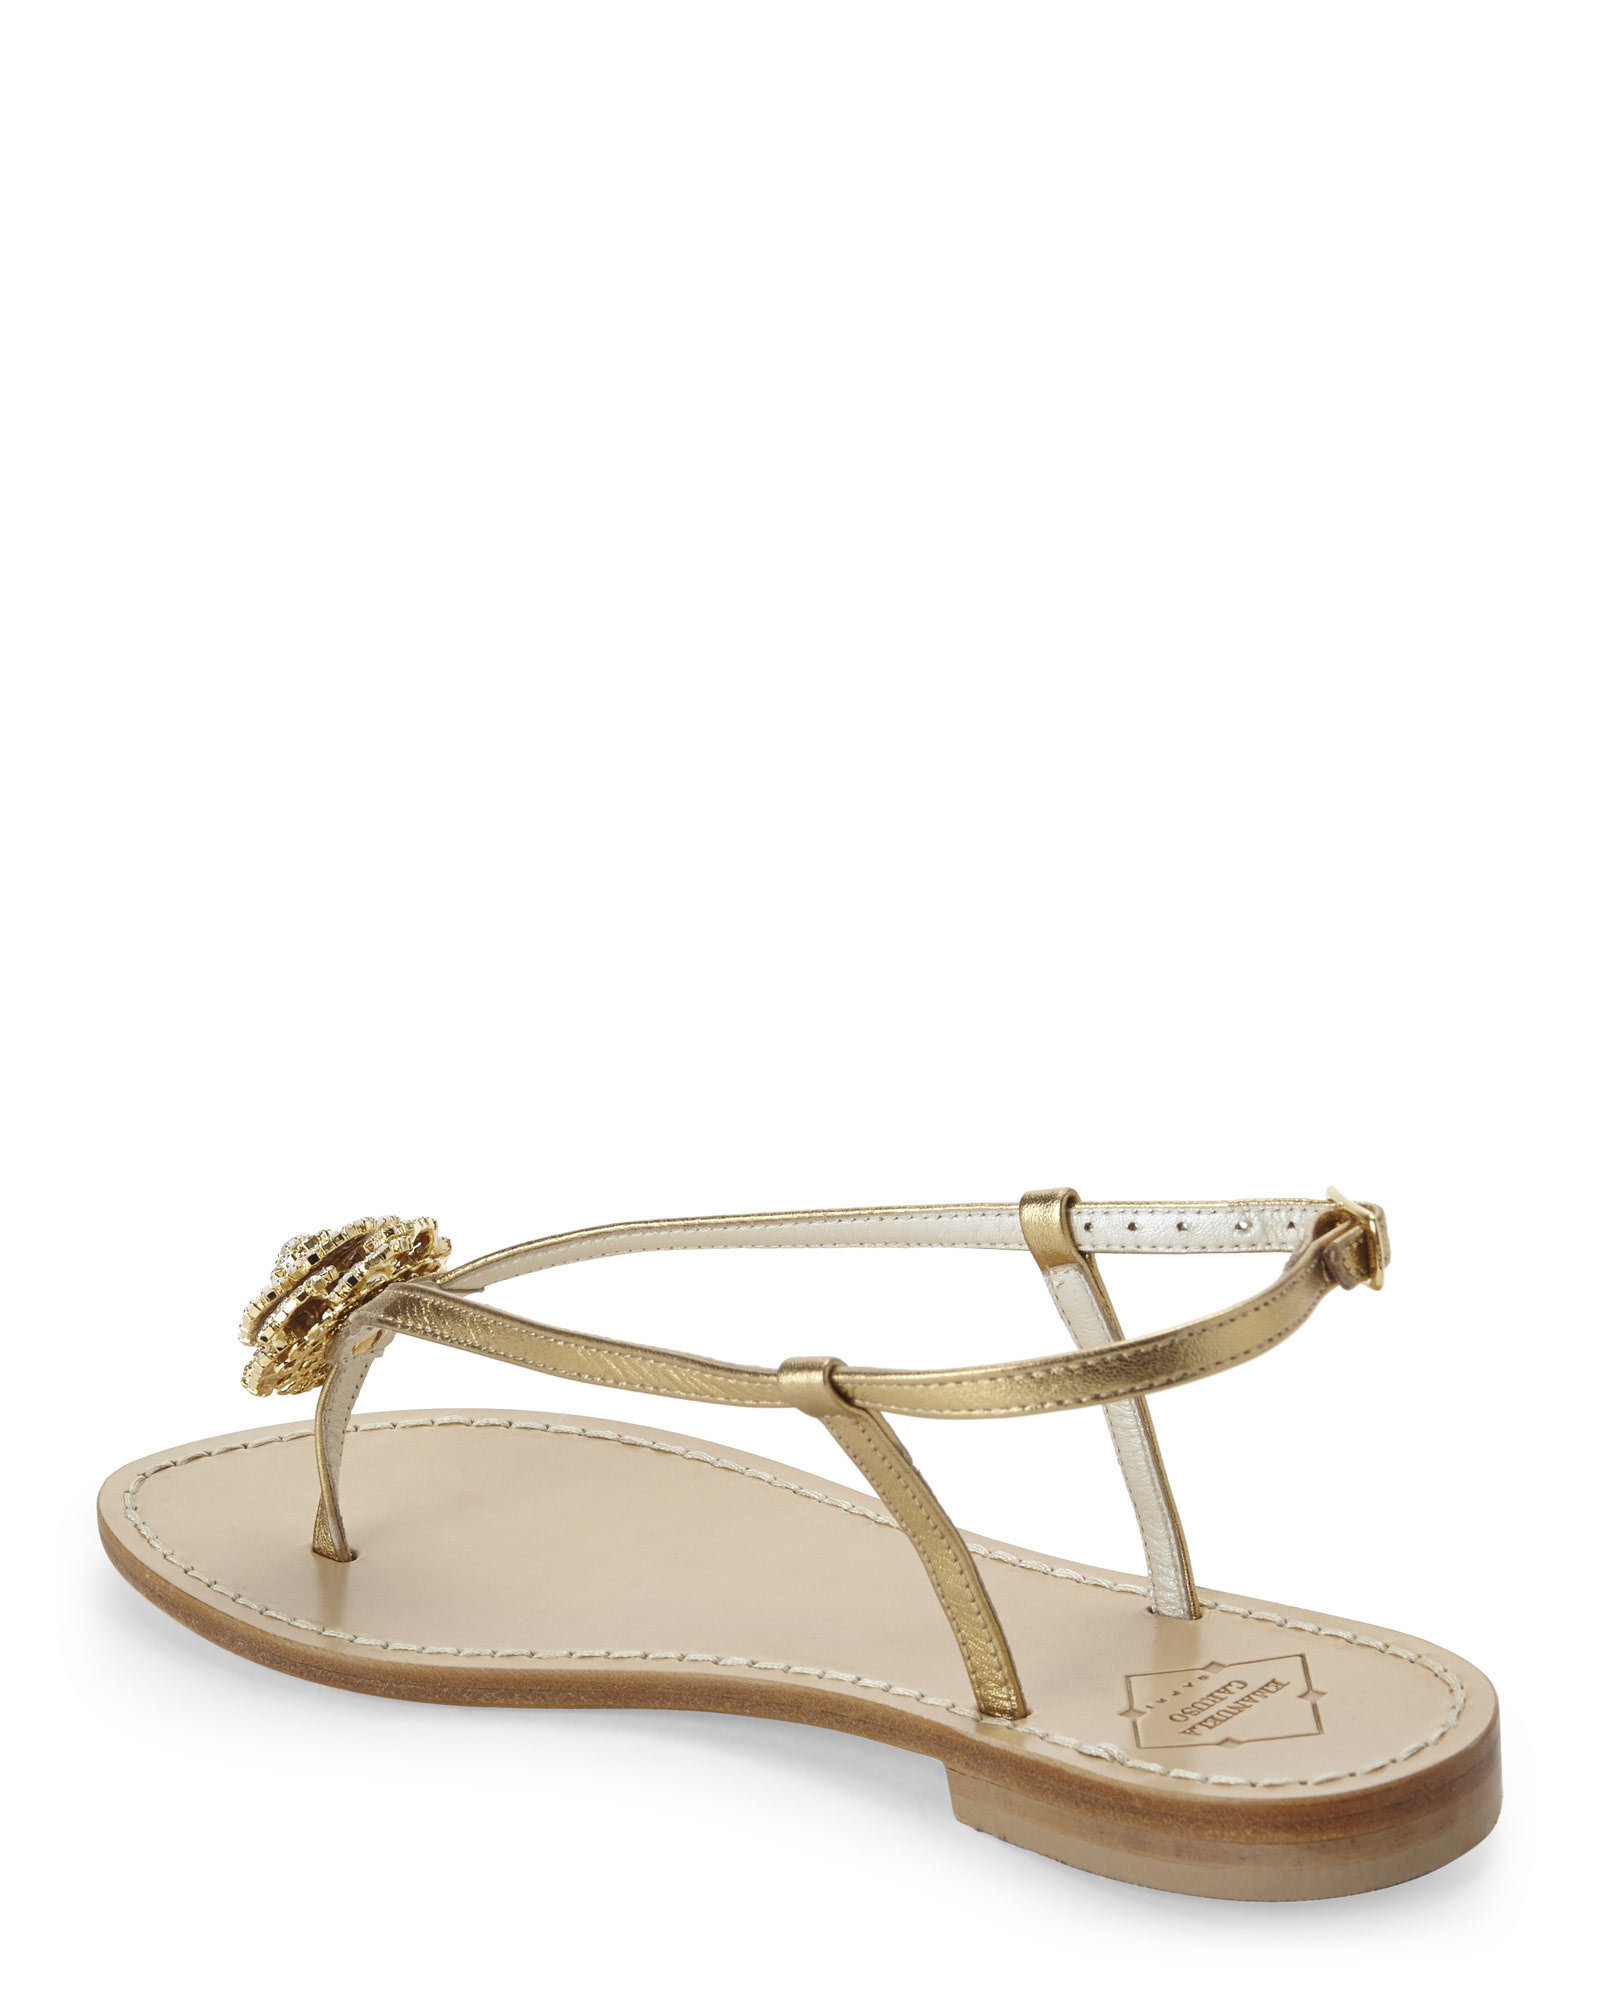 Emanuela Caruso Gold Jeweled Flower Flat Sandals In Beige (Gold) | Lyst